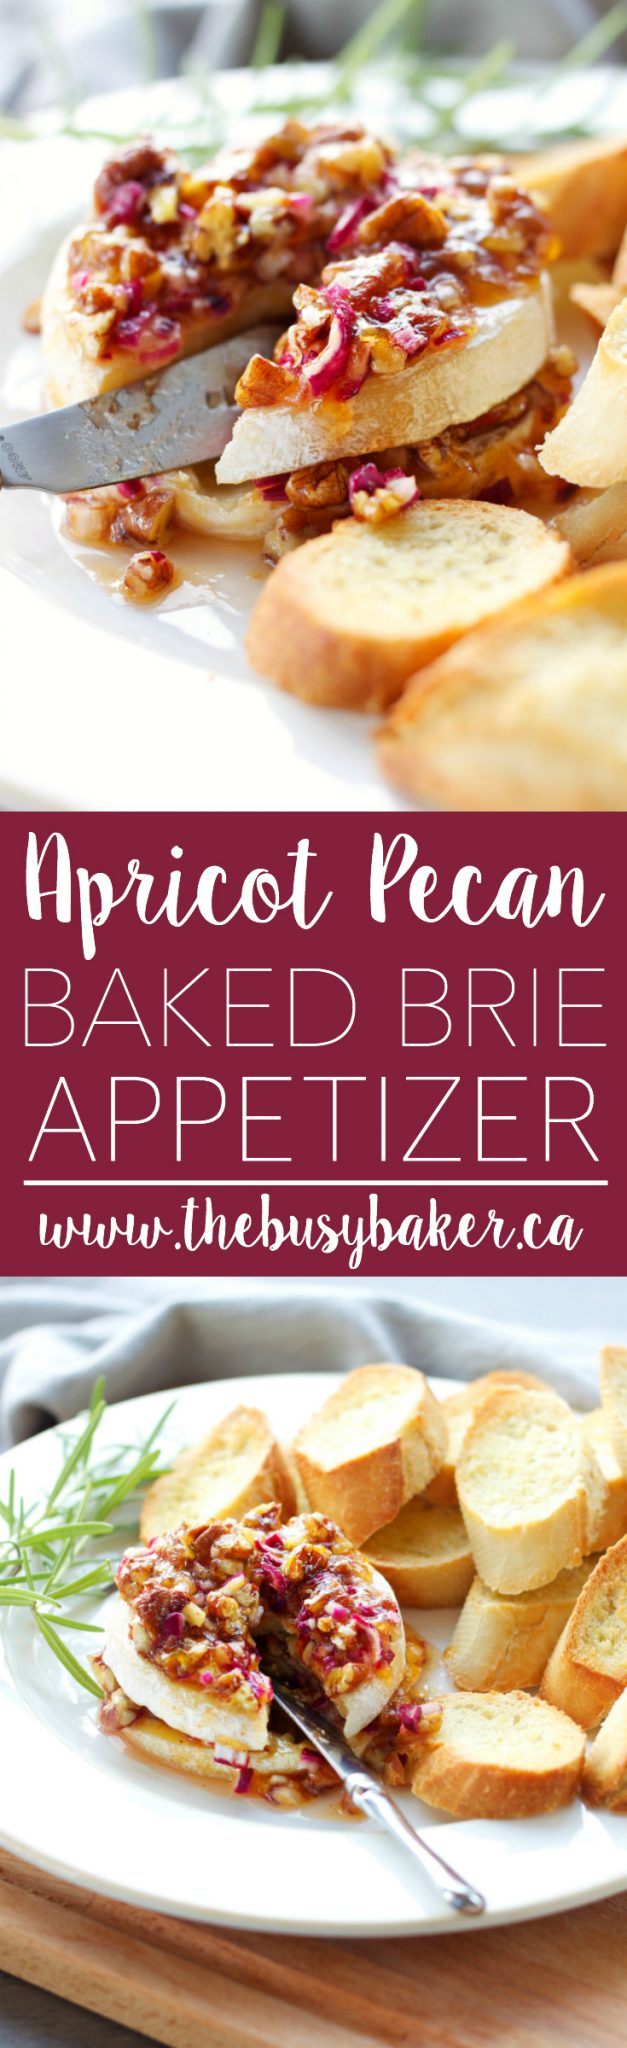 This 4-ingredient Apricot Pecan Baked Brie Appetizer is easy to make and it's perfect for holiday parties because it's so rich-tasting and decadent! Recipe from thebusybaker.ca! via @busybakerblog